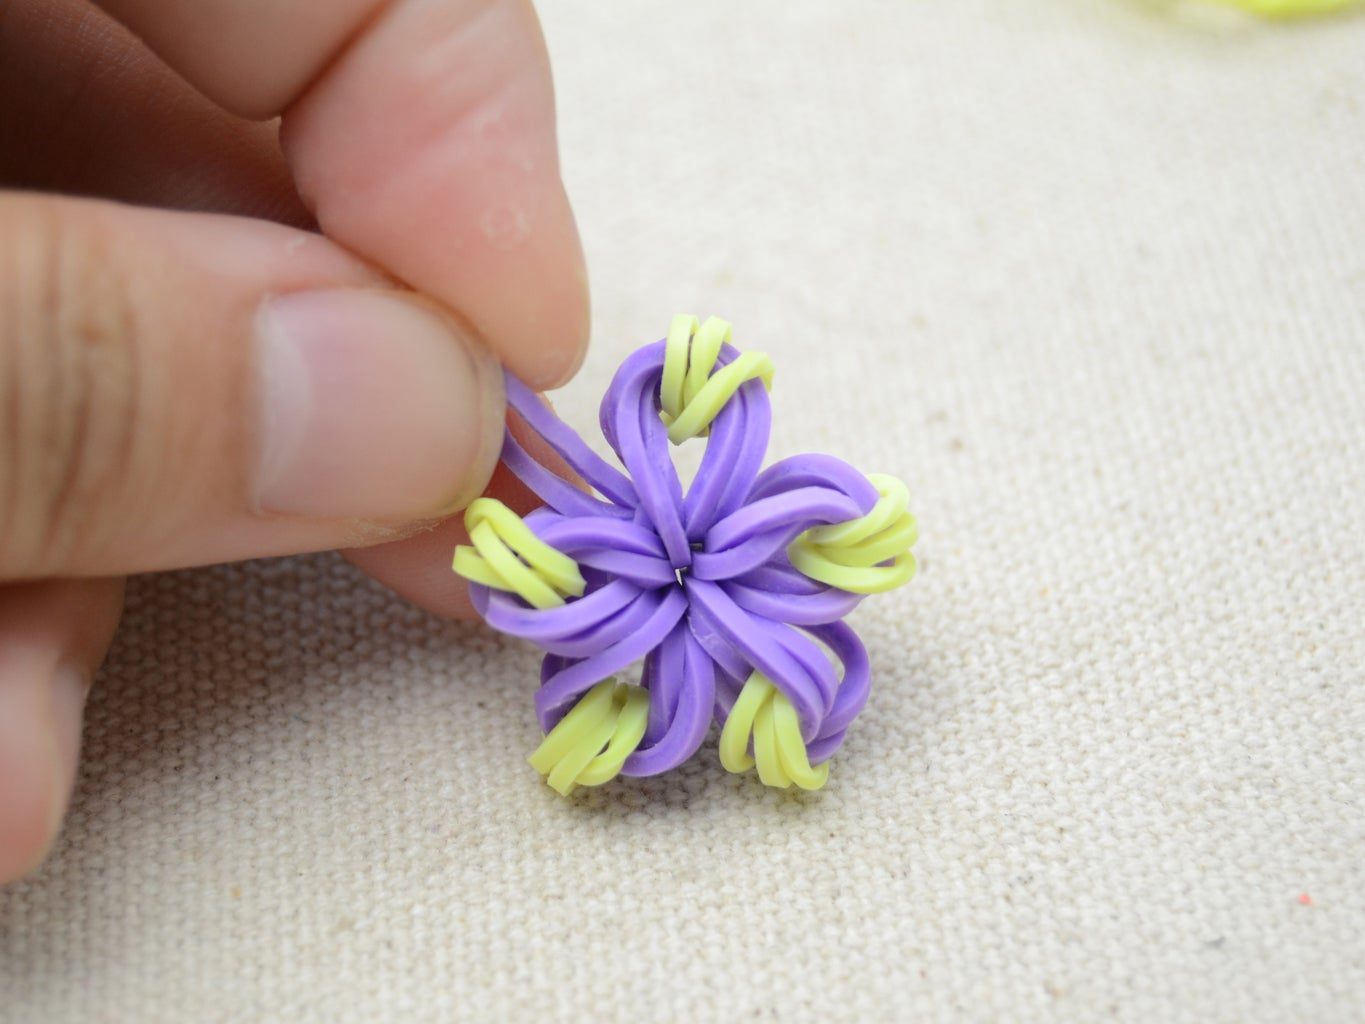 Cross the Two Ends and Tighten It,  to Finish the First Flower;